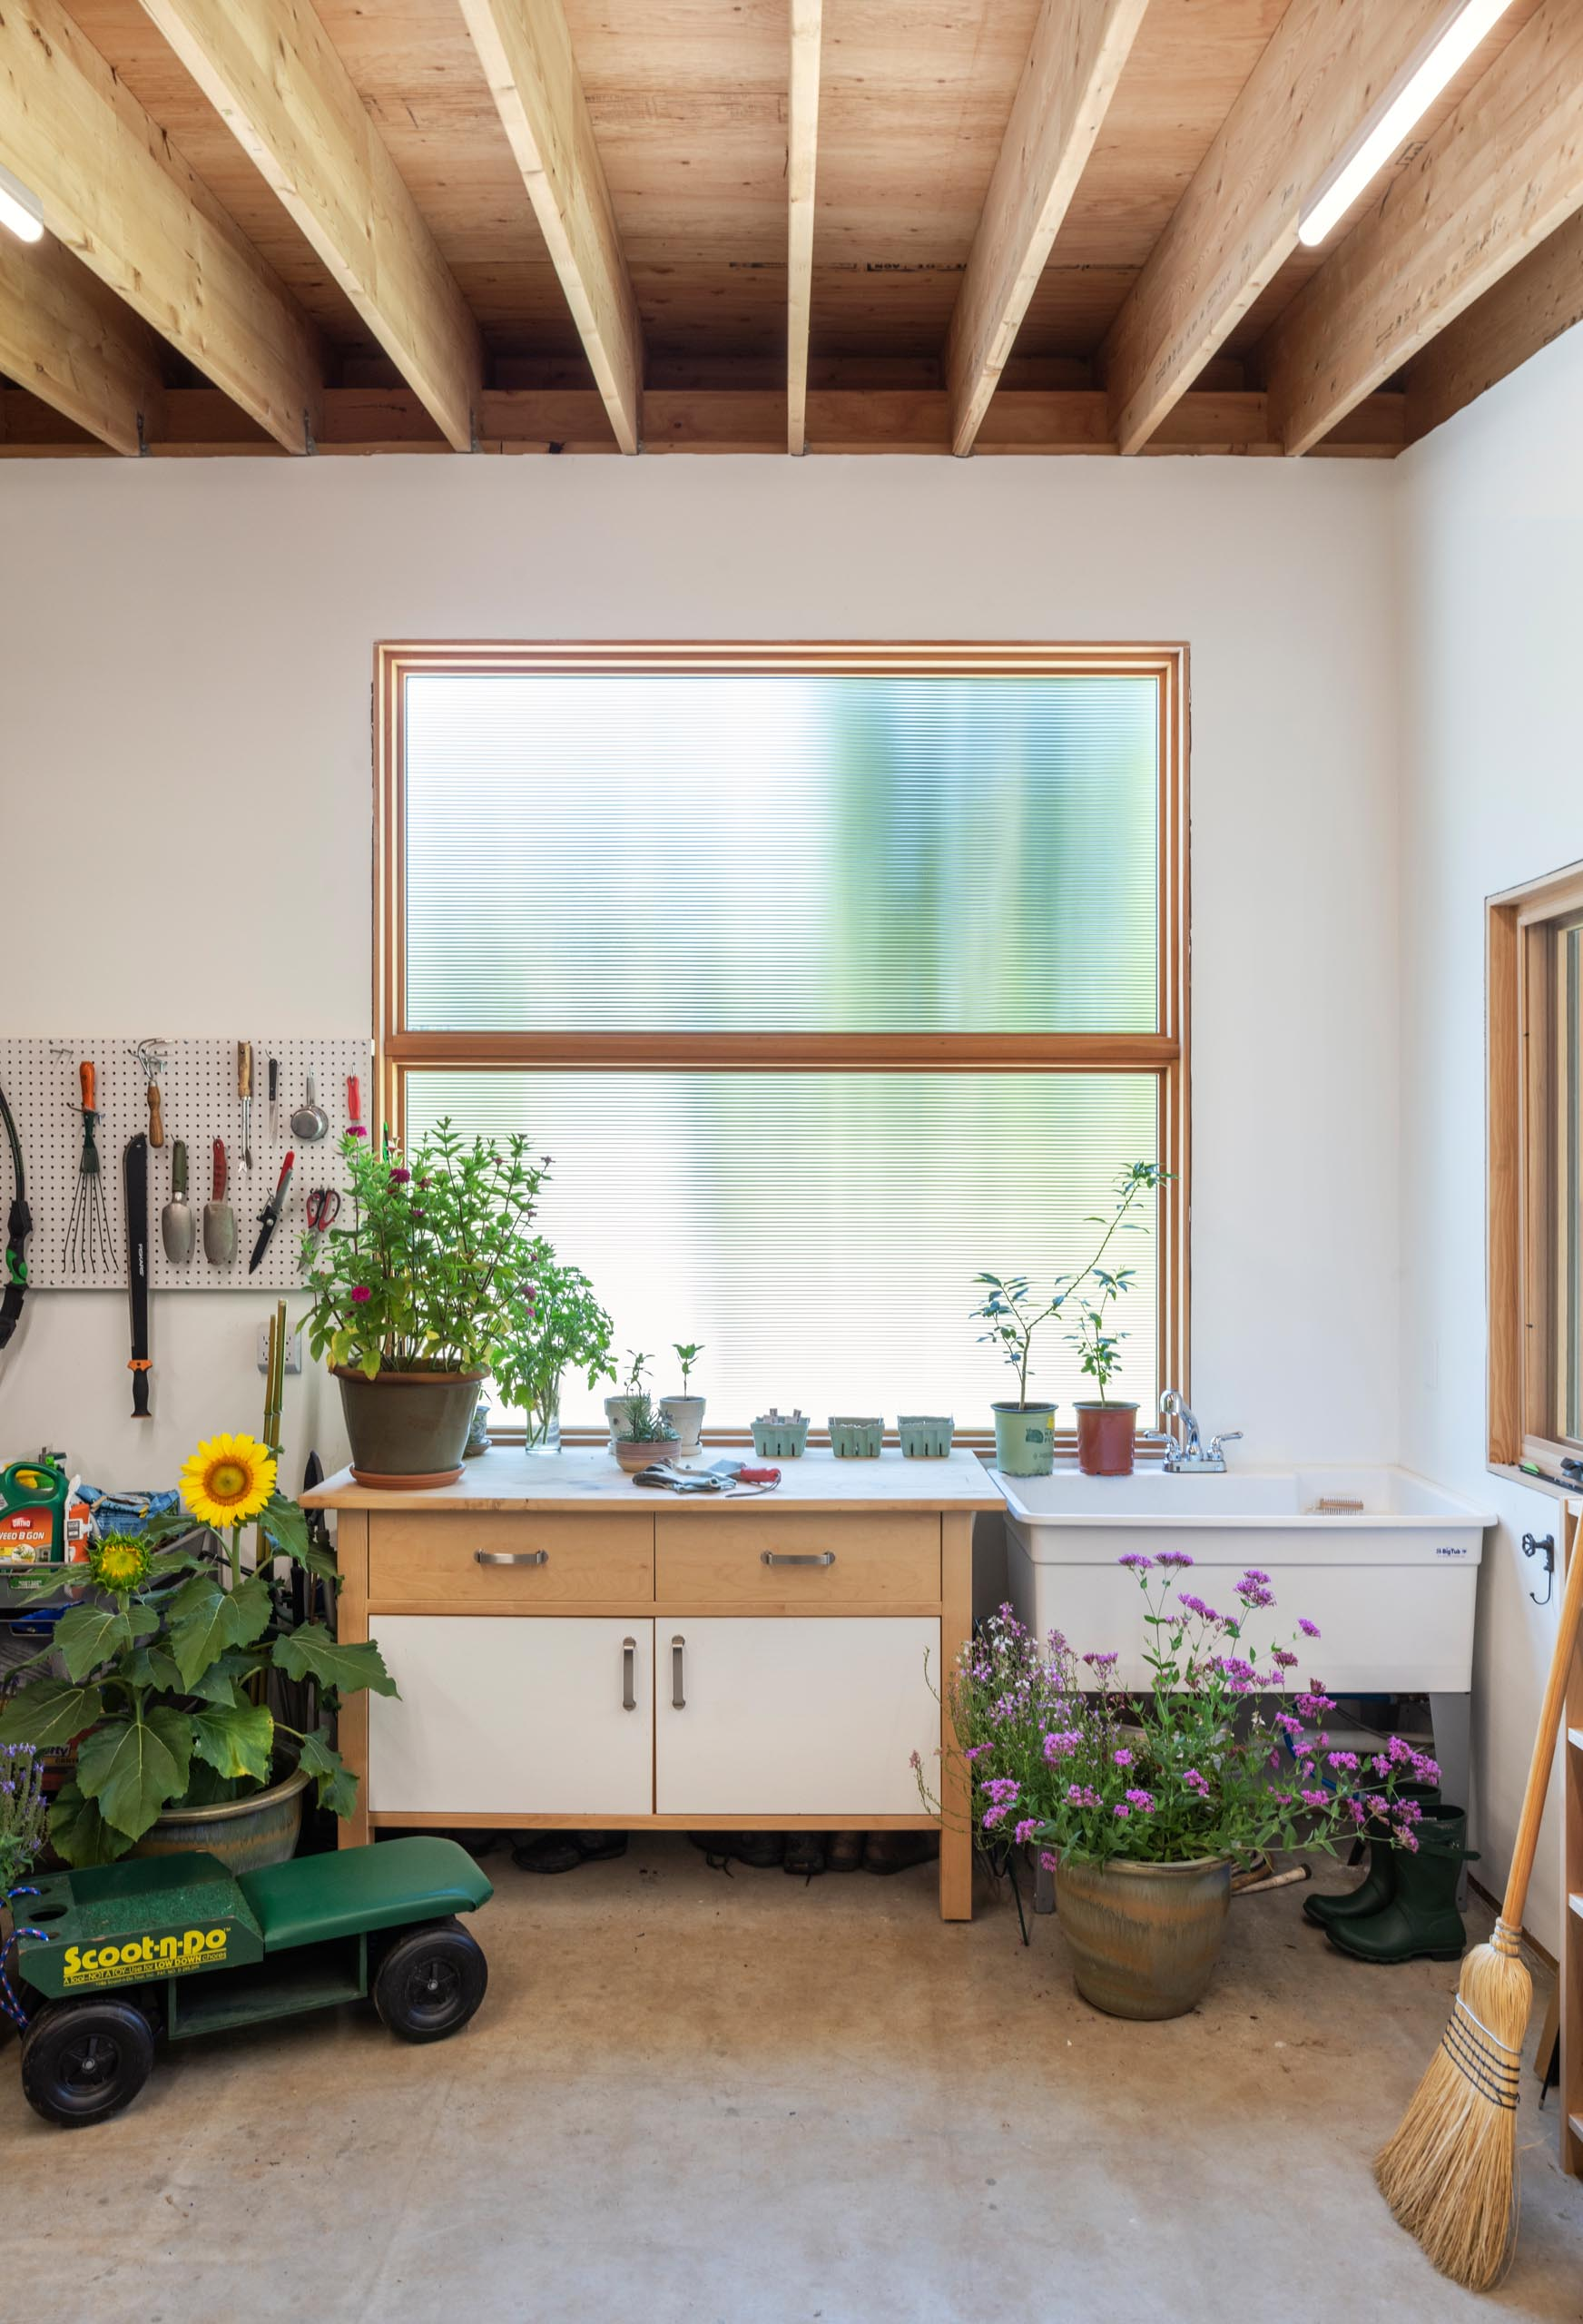 A potting shed with tool storage, work bench and a sink.